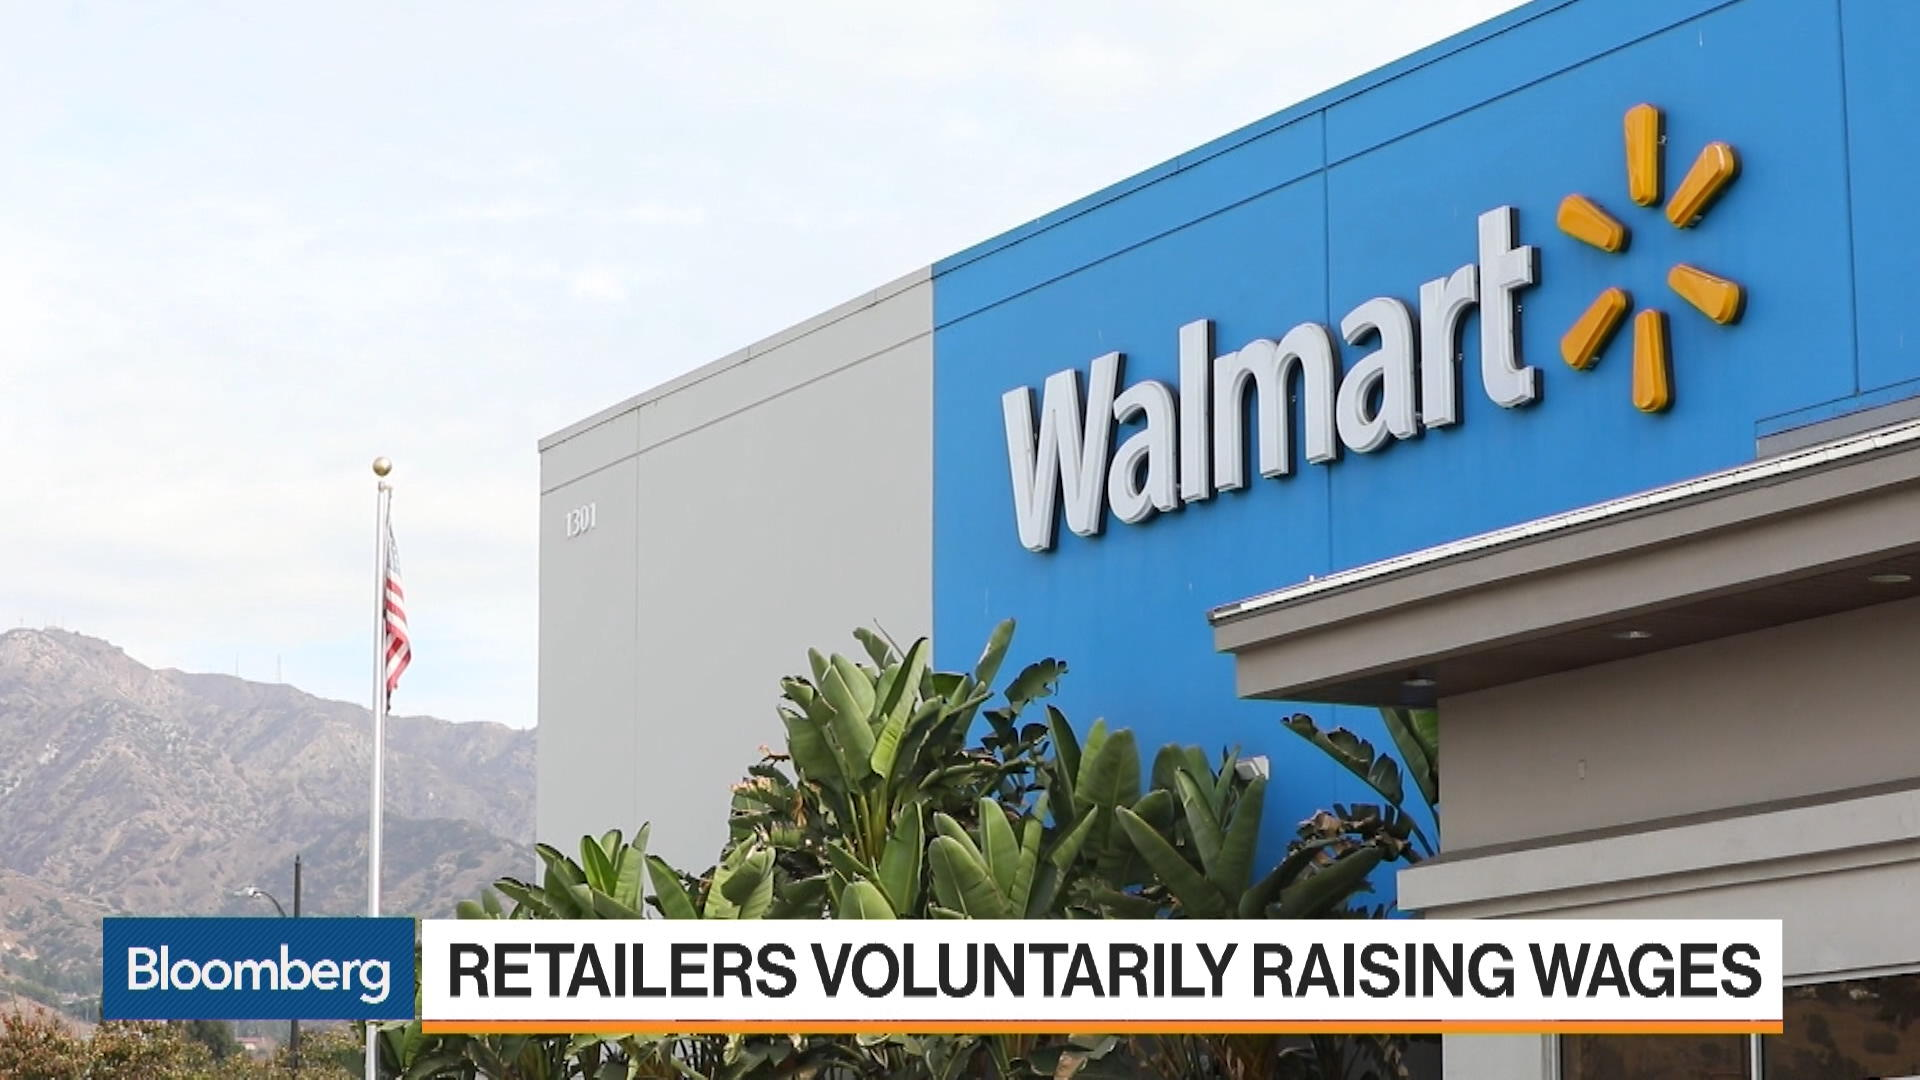 Wal-Mart Job Cuts Rise to 1,000 in Company's Latest Shake-Up